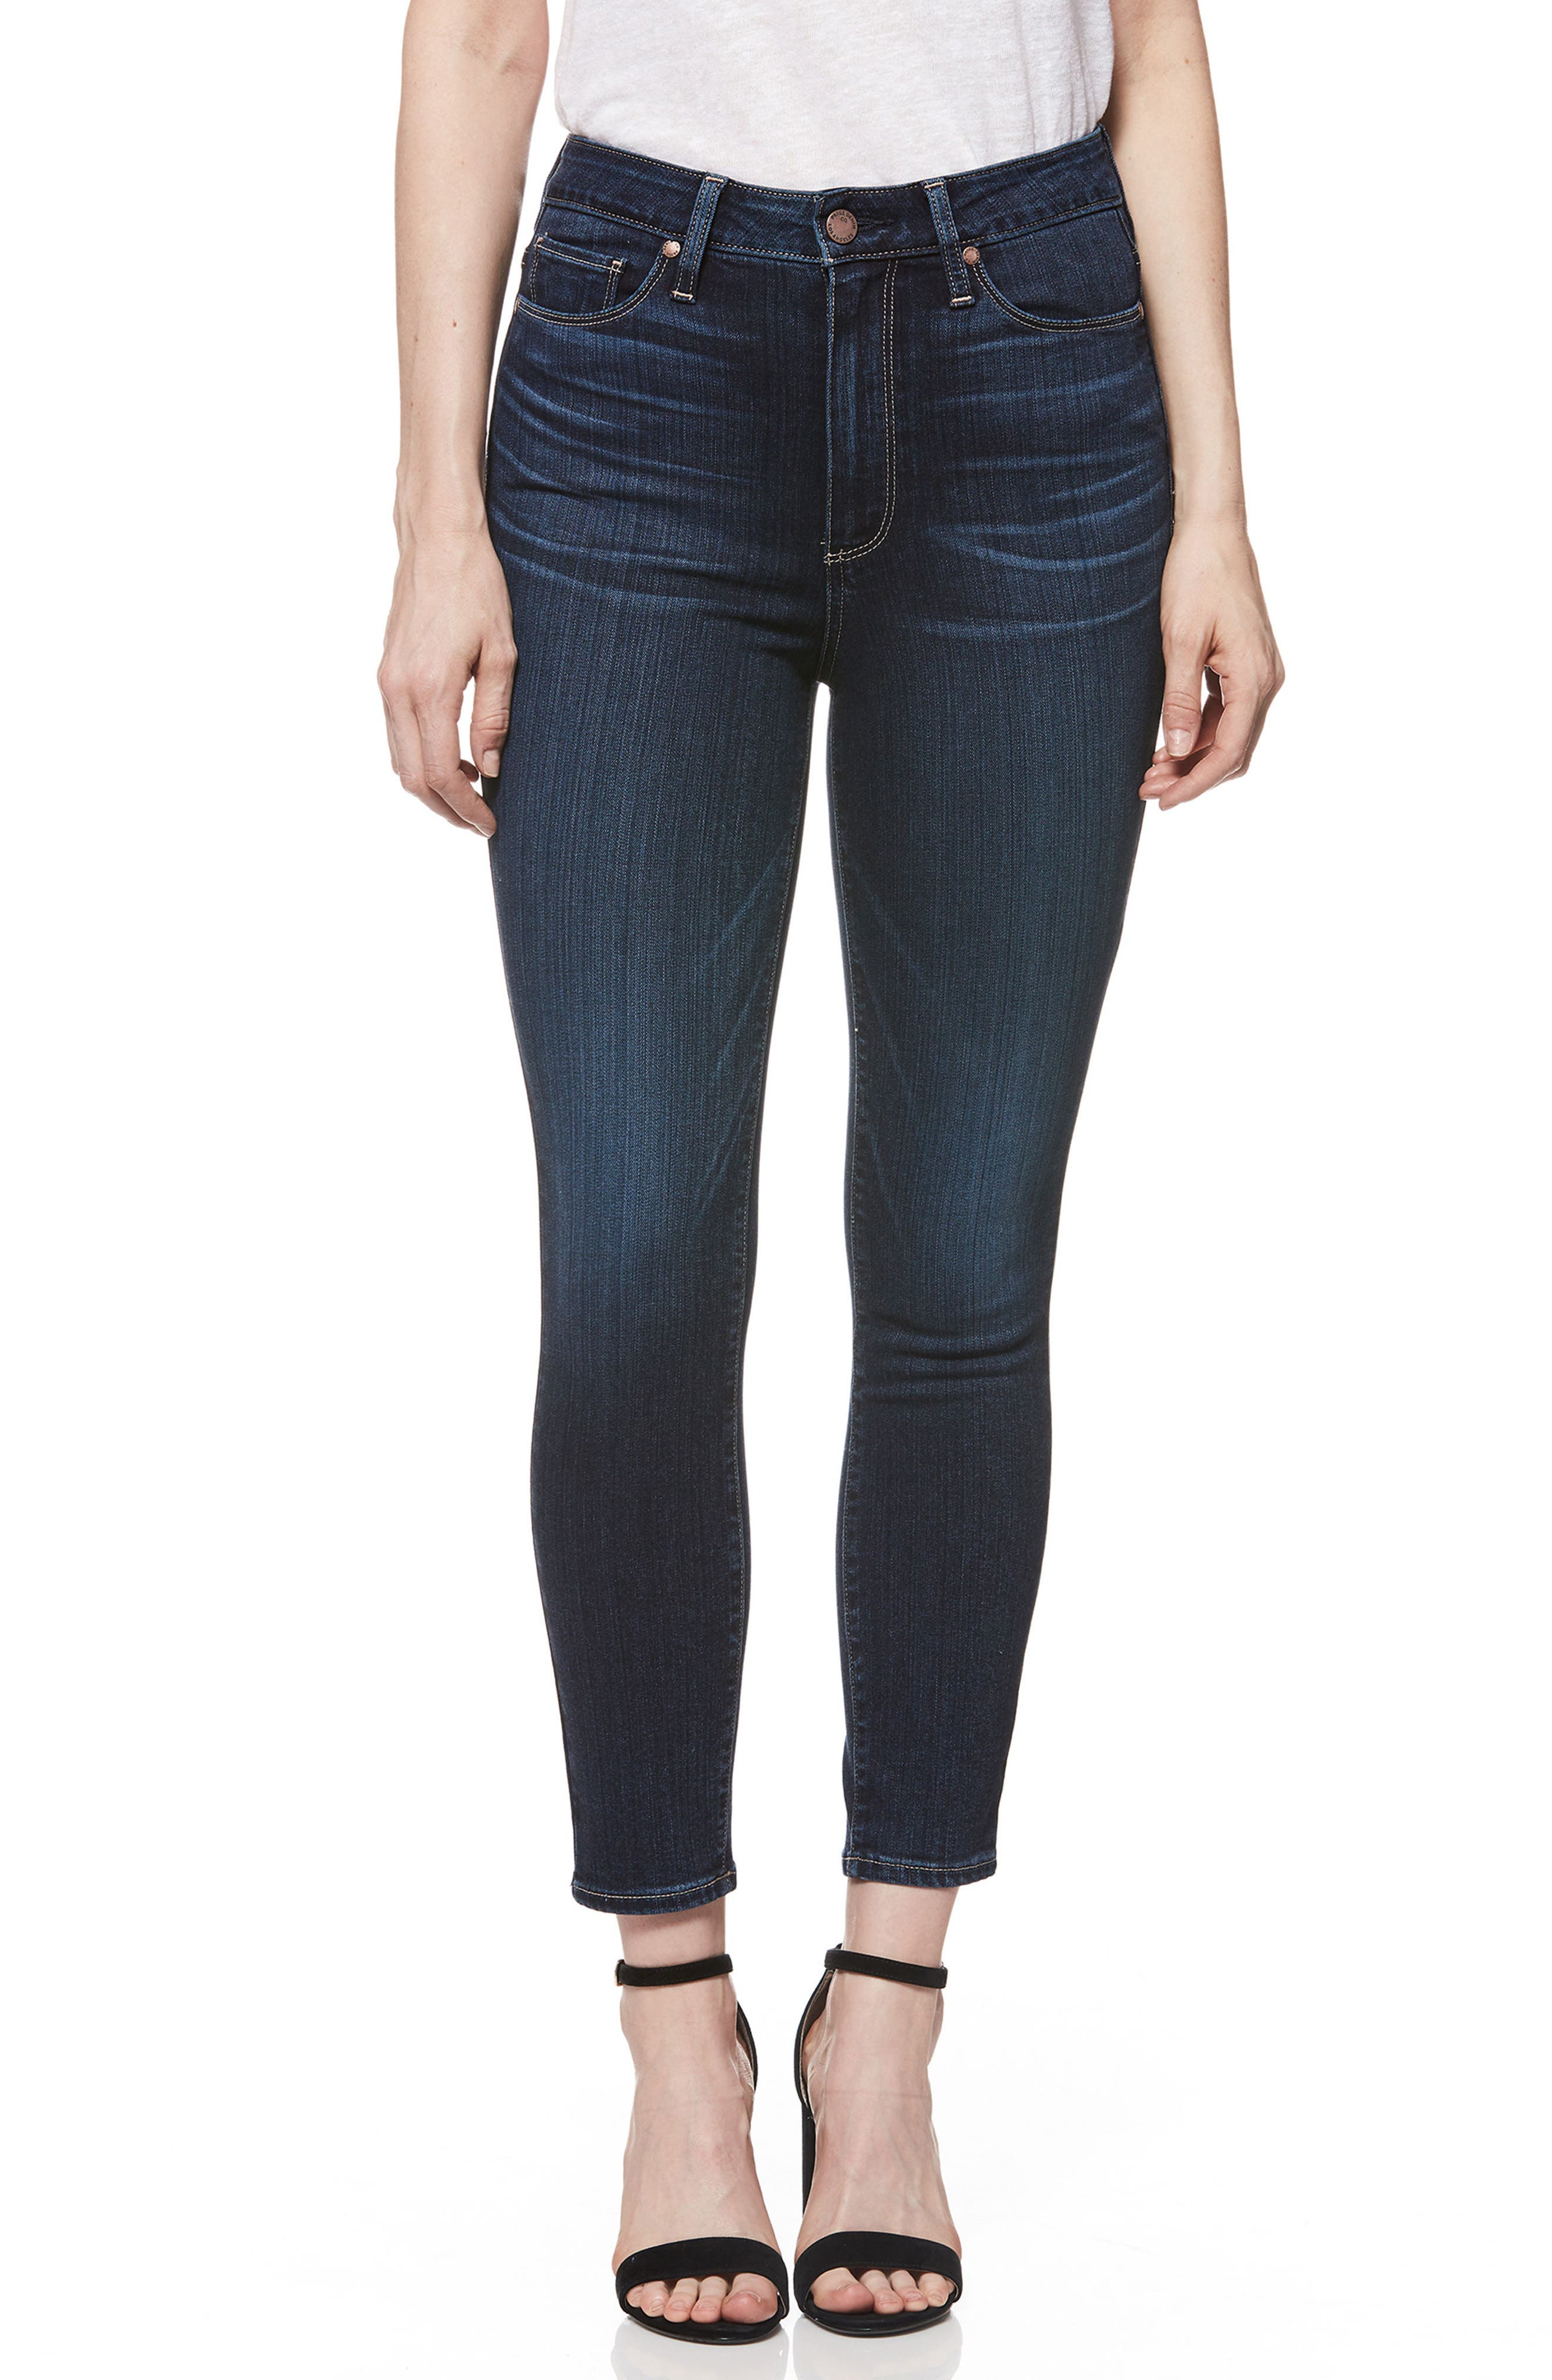 Transcend - Margot High Waist Crop Skinny Jeans,                             Main thumbnail 1, color,                             400